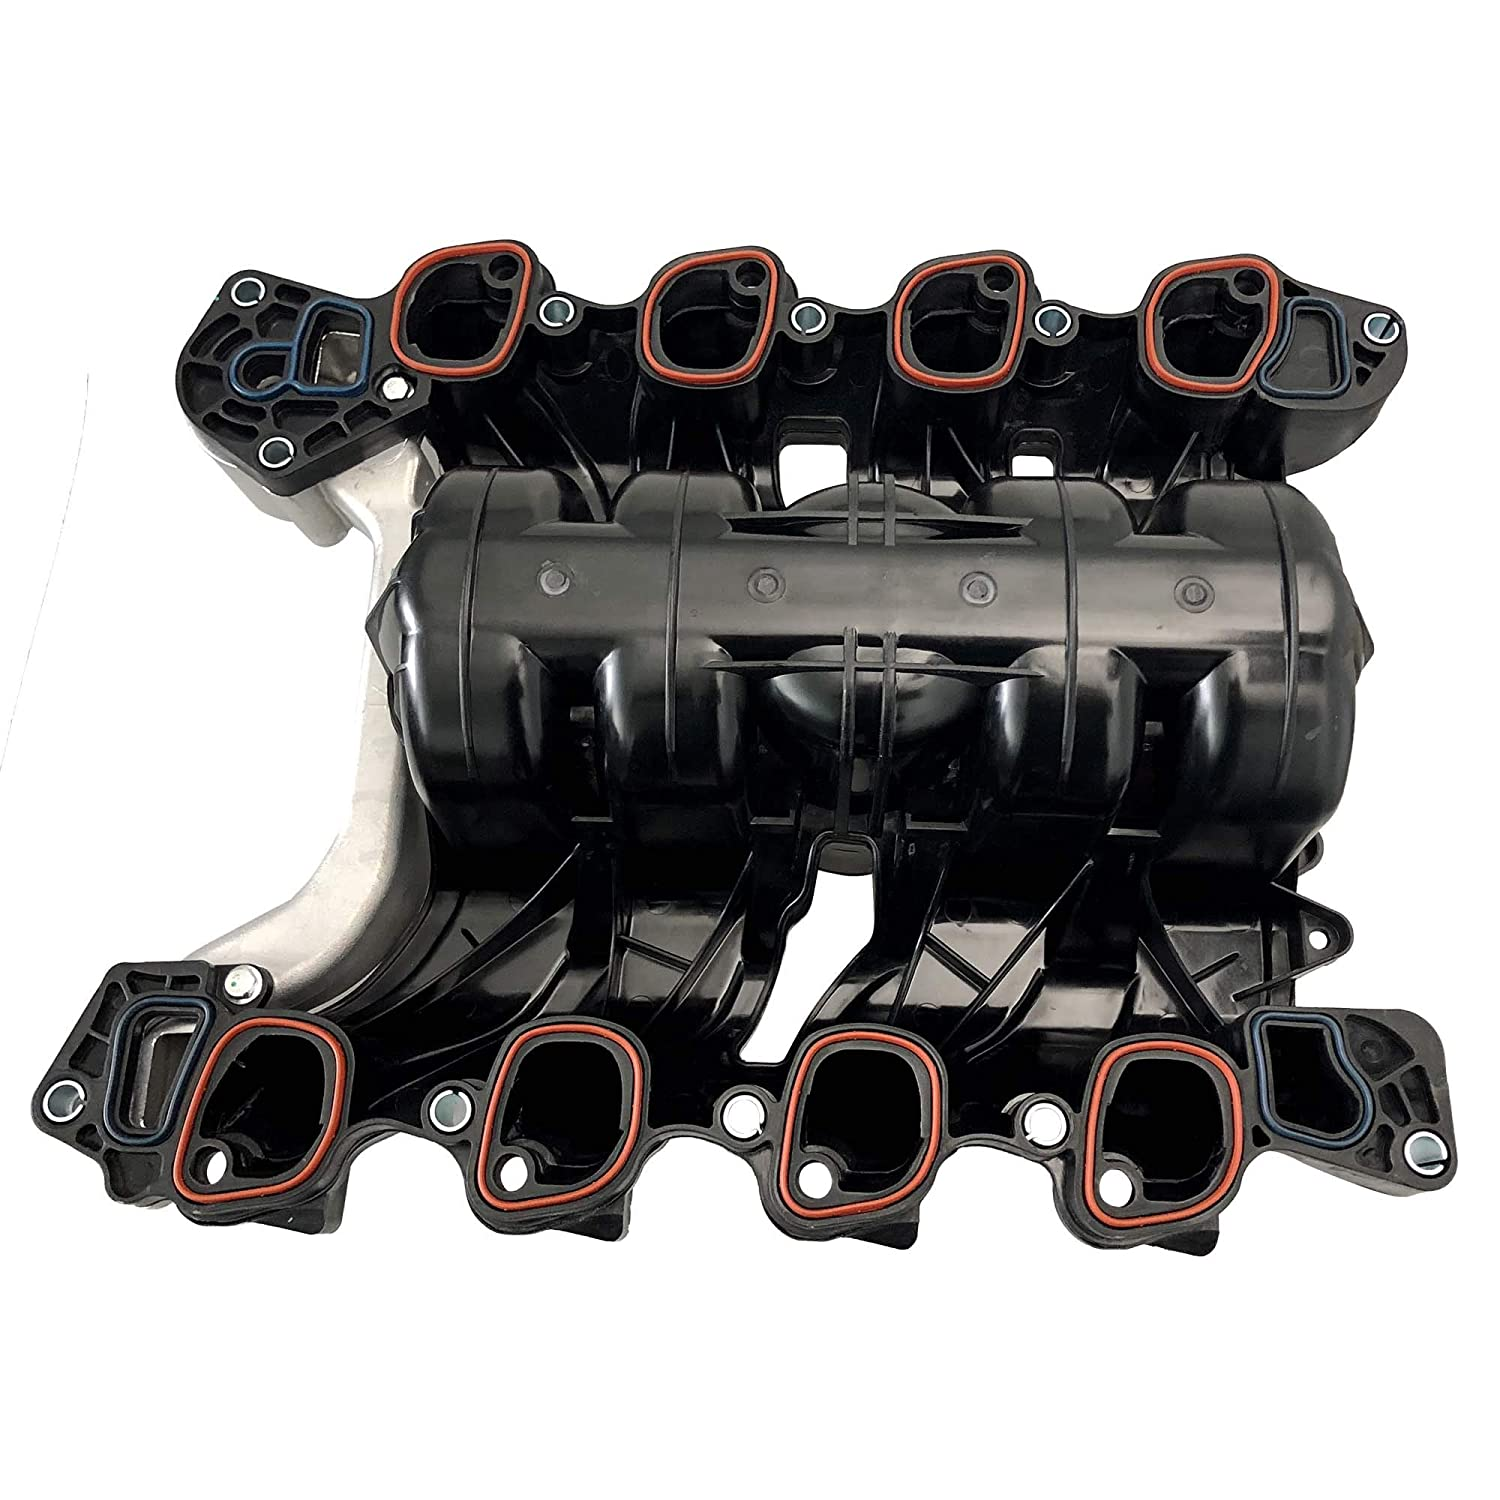 From Vehicle Build Date March 4, 2002 Mercury Mountaineer 2002-2005 V8 4.6L BOXI Upper Intake Manifold For Ford Explorer 2002-2005 615-775 2L2Z9424-A